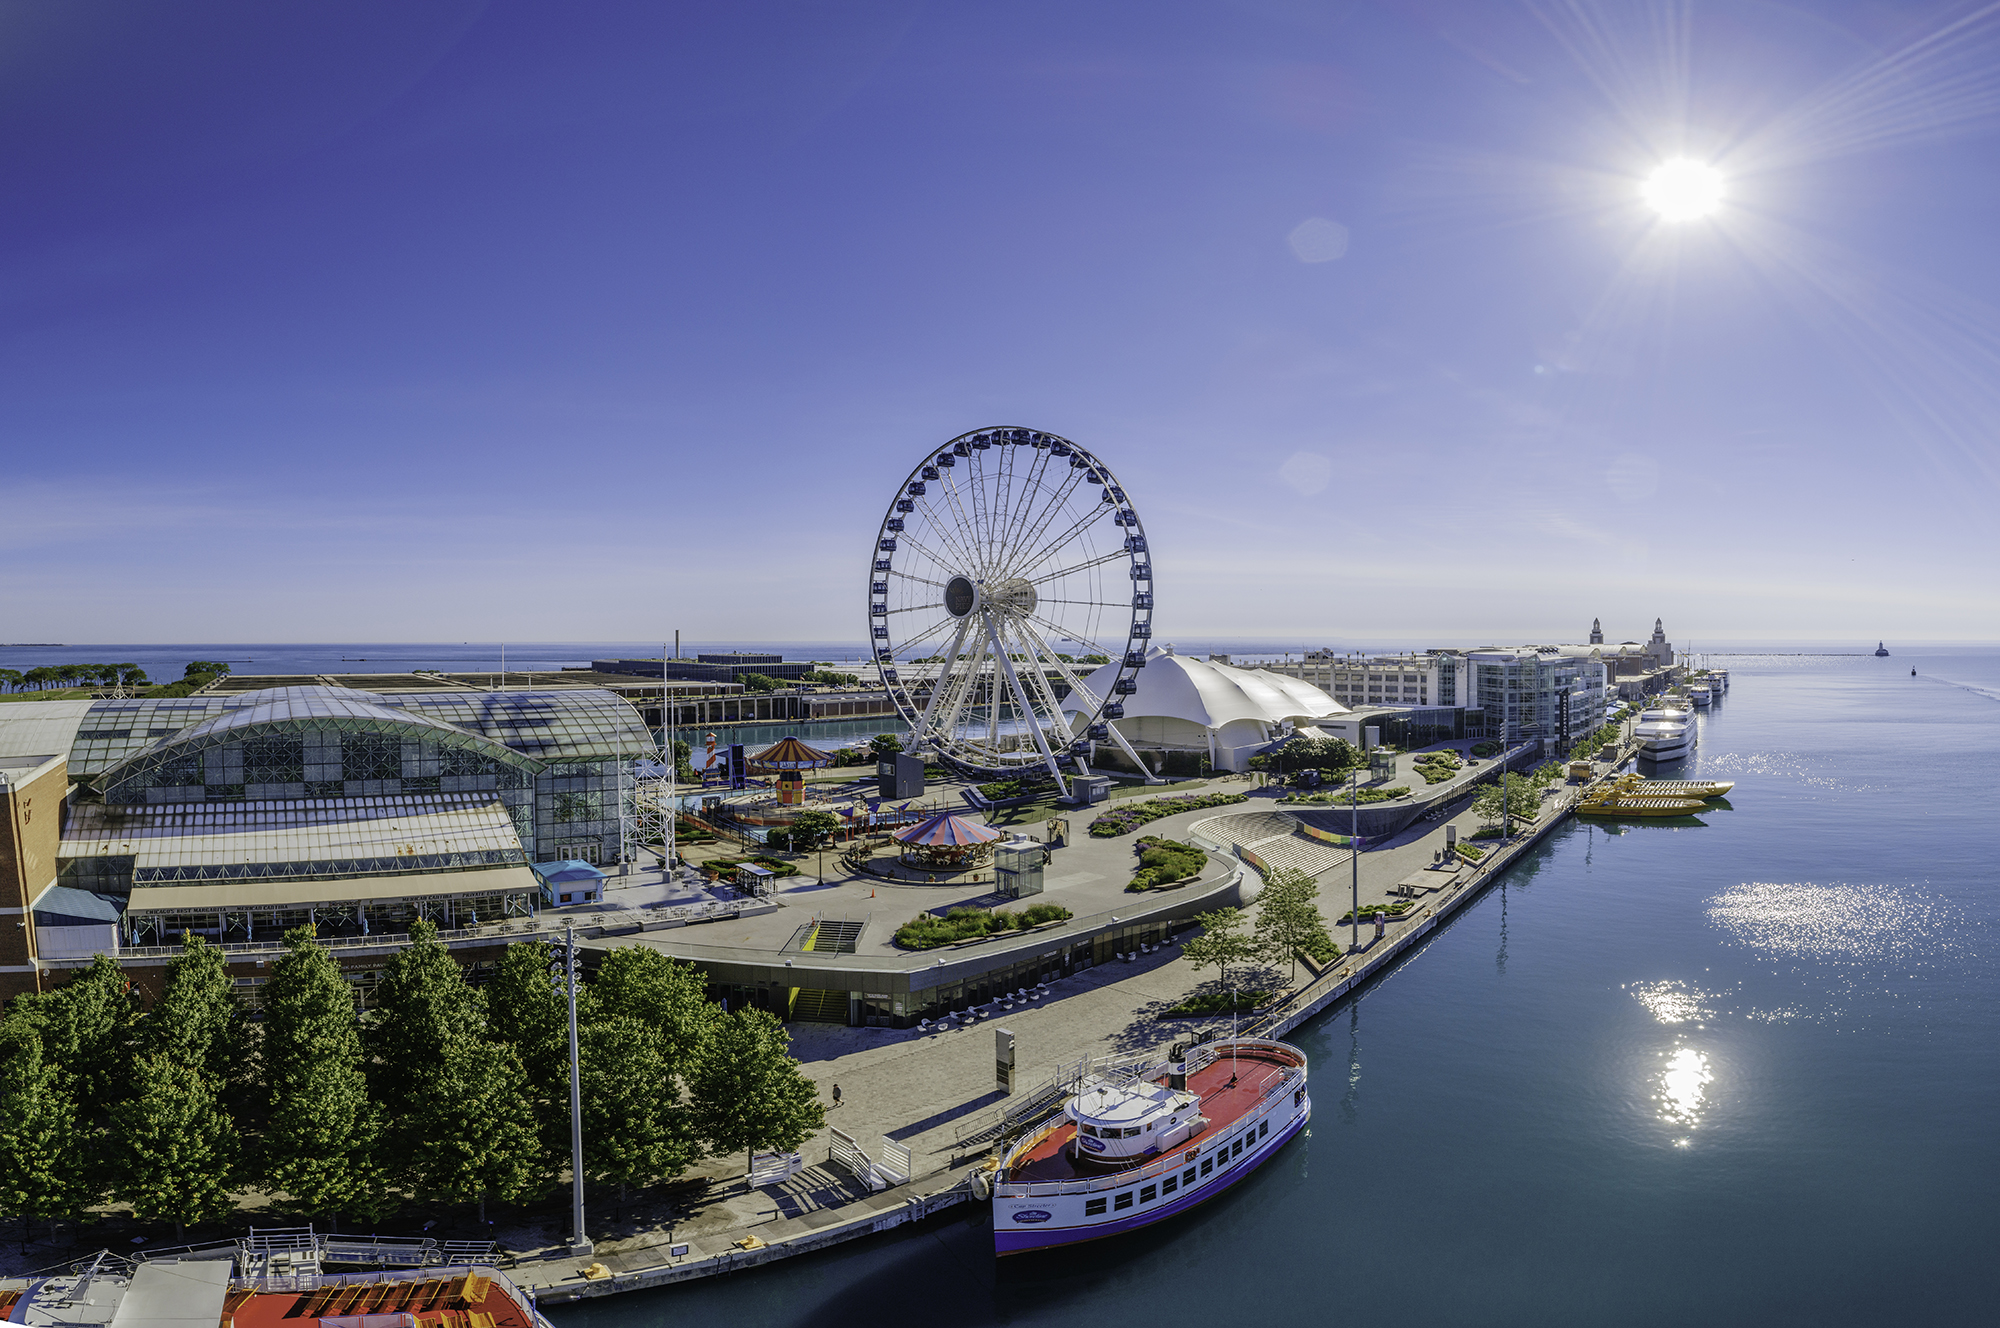 Navy Pier | A Chicago Landmark